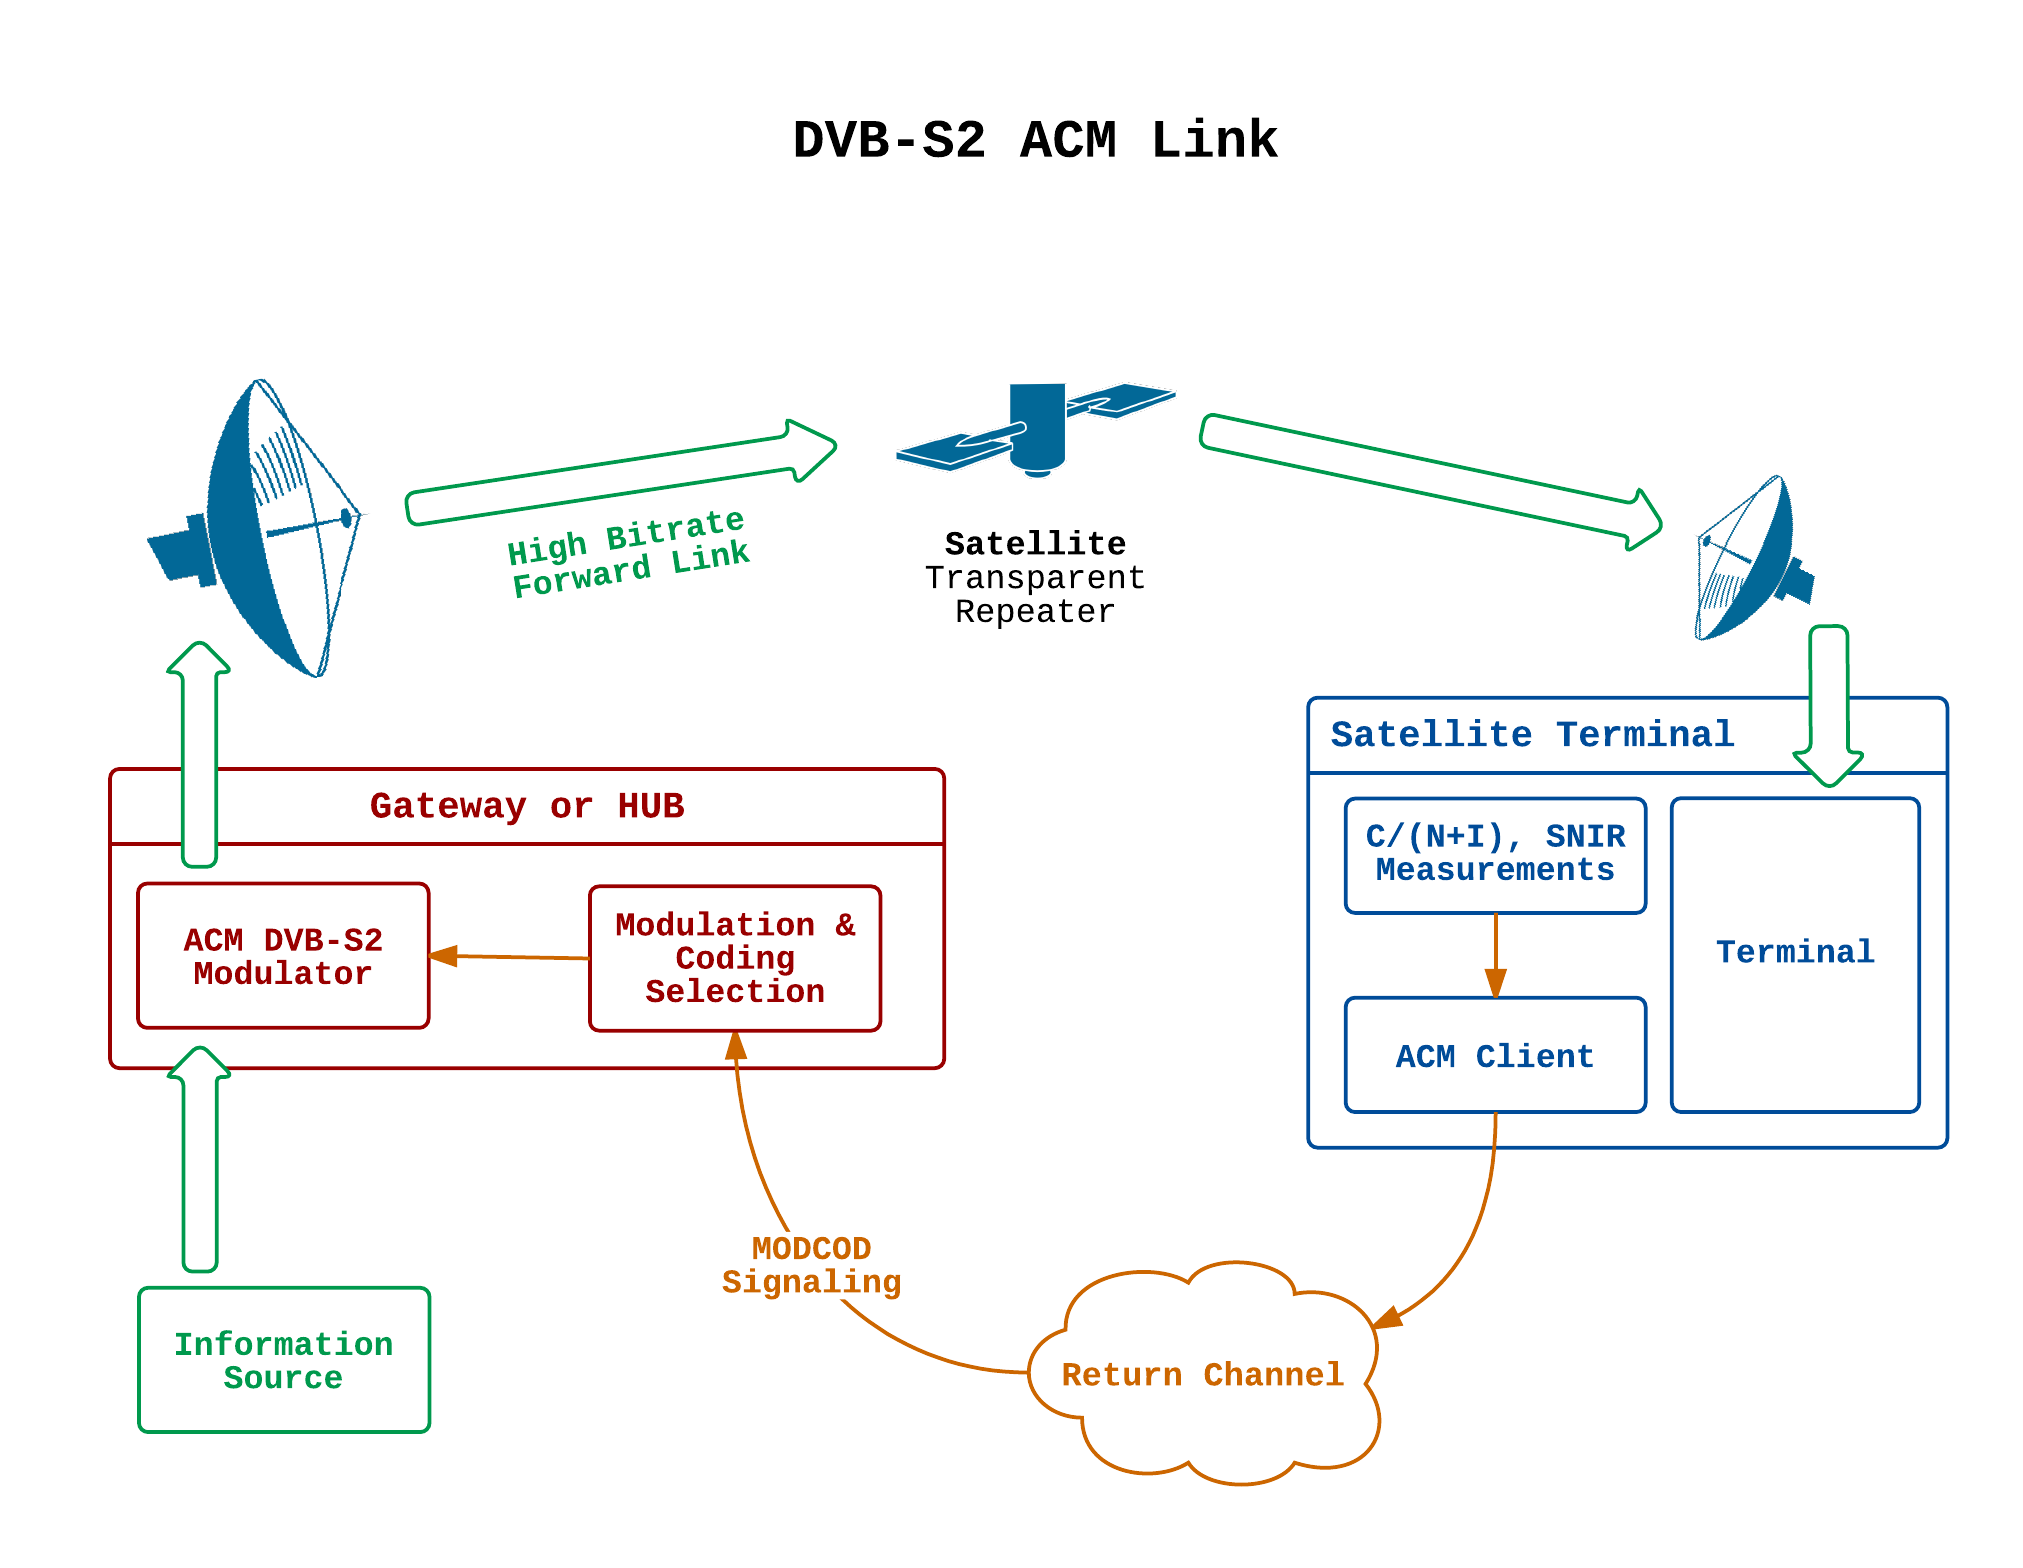 adaptive coding and modulation 2014 acm testing using channel rh sourceforge isae fr dvb-s receiver block diagram DVB- S2